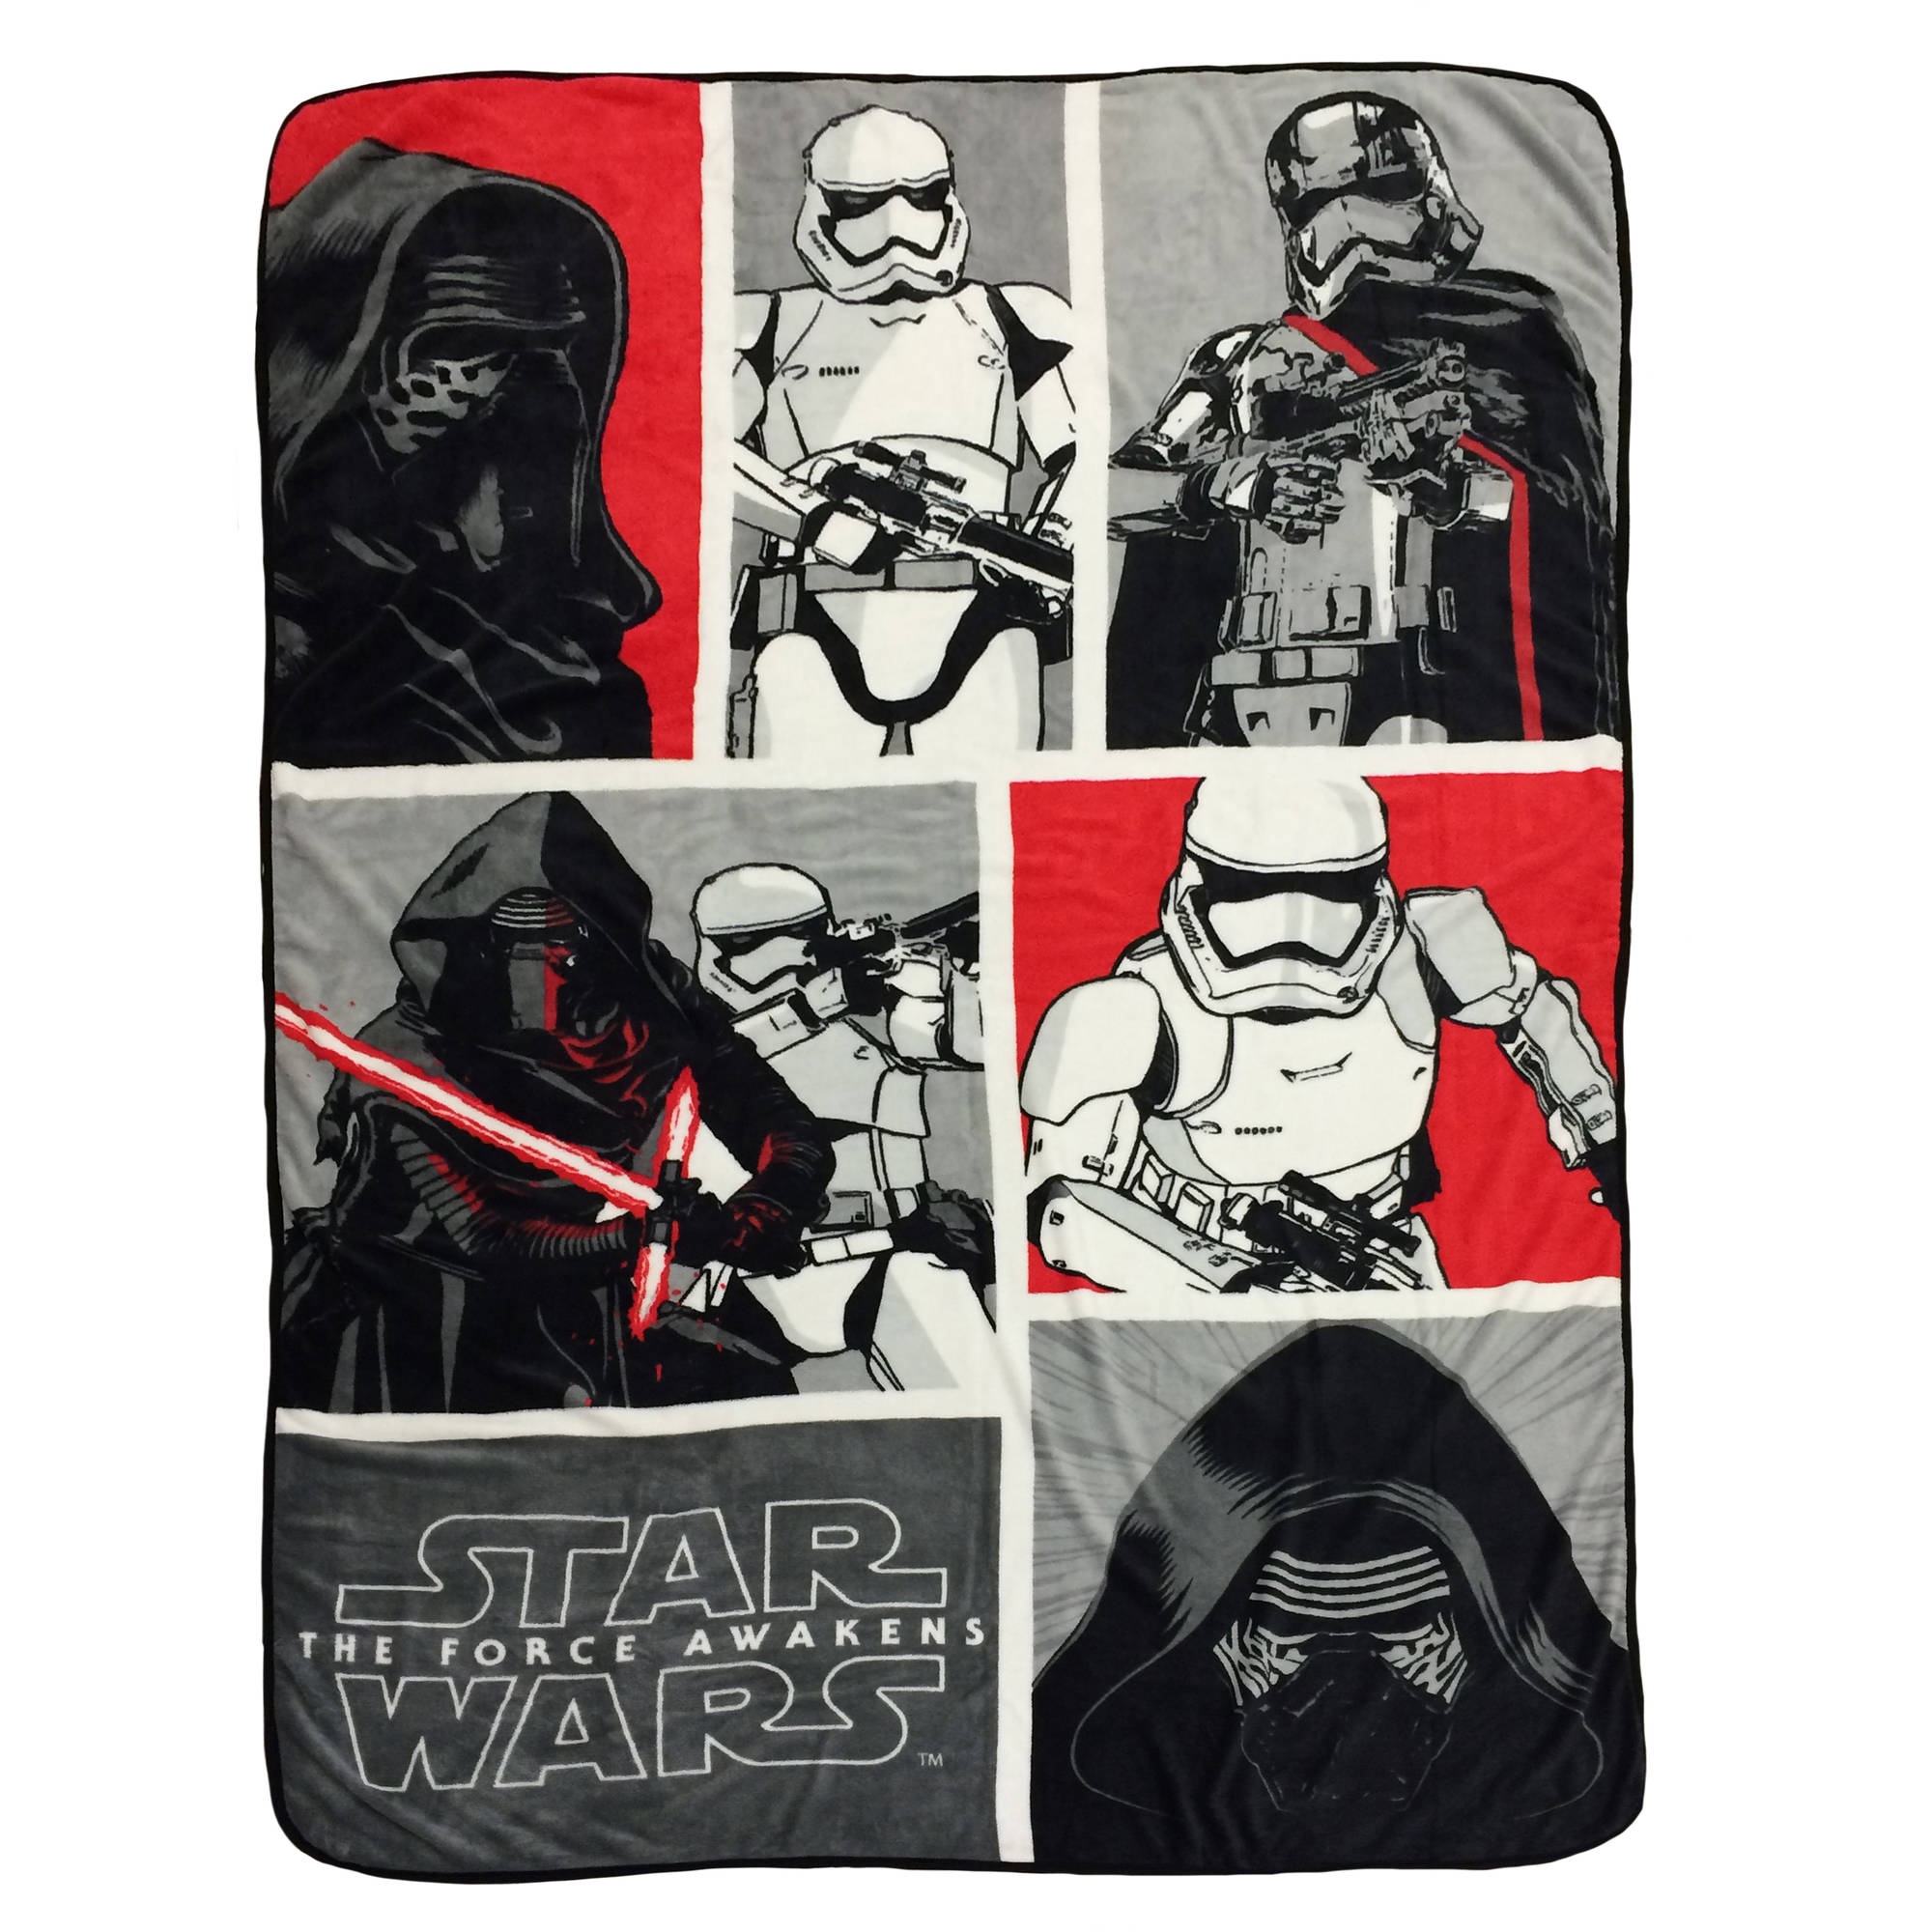 Star Wars Episode VII Rule the Galaxy Blanket